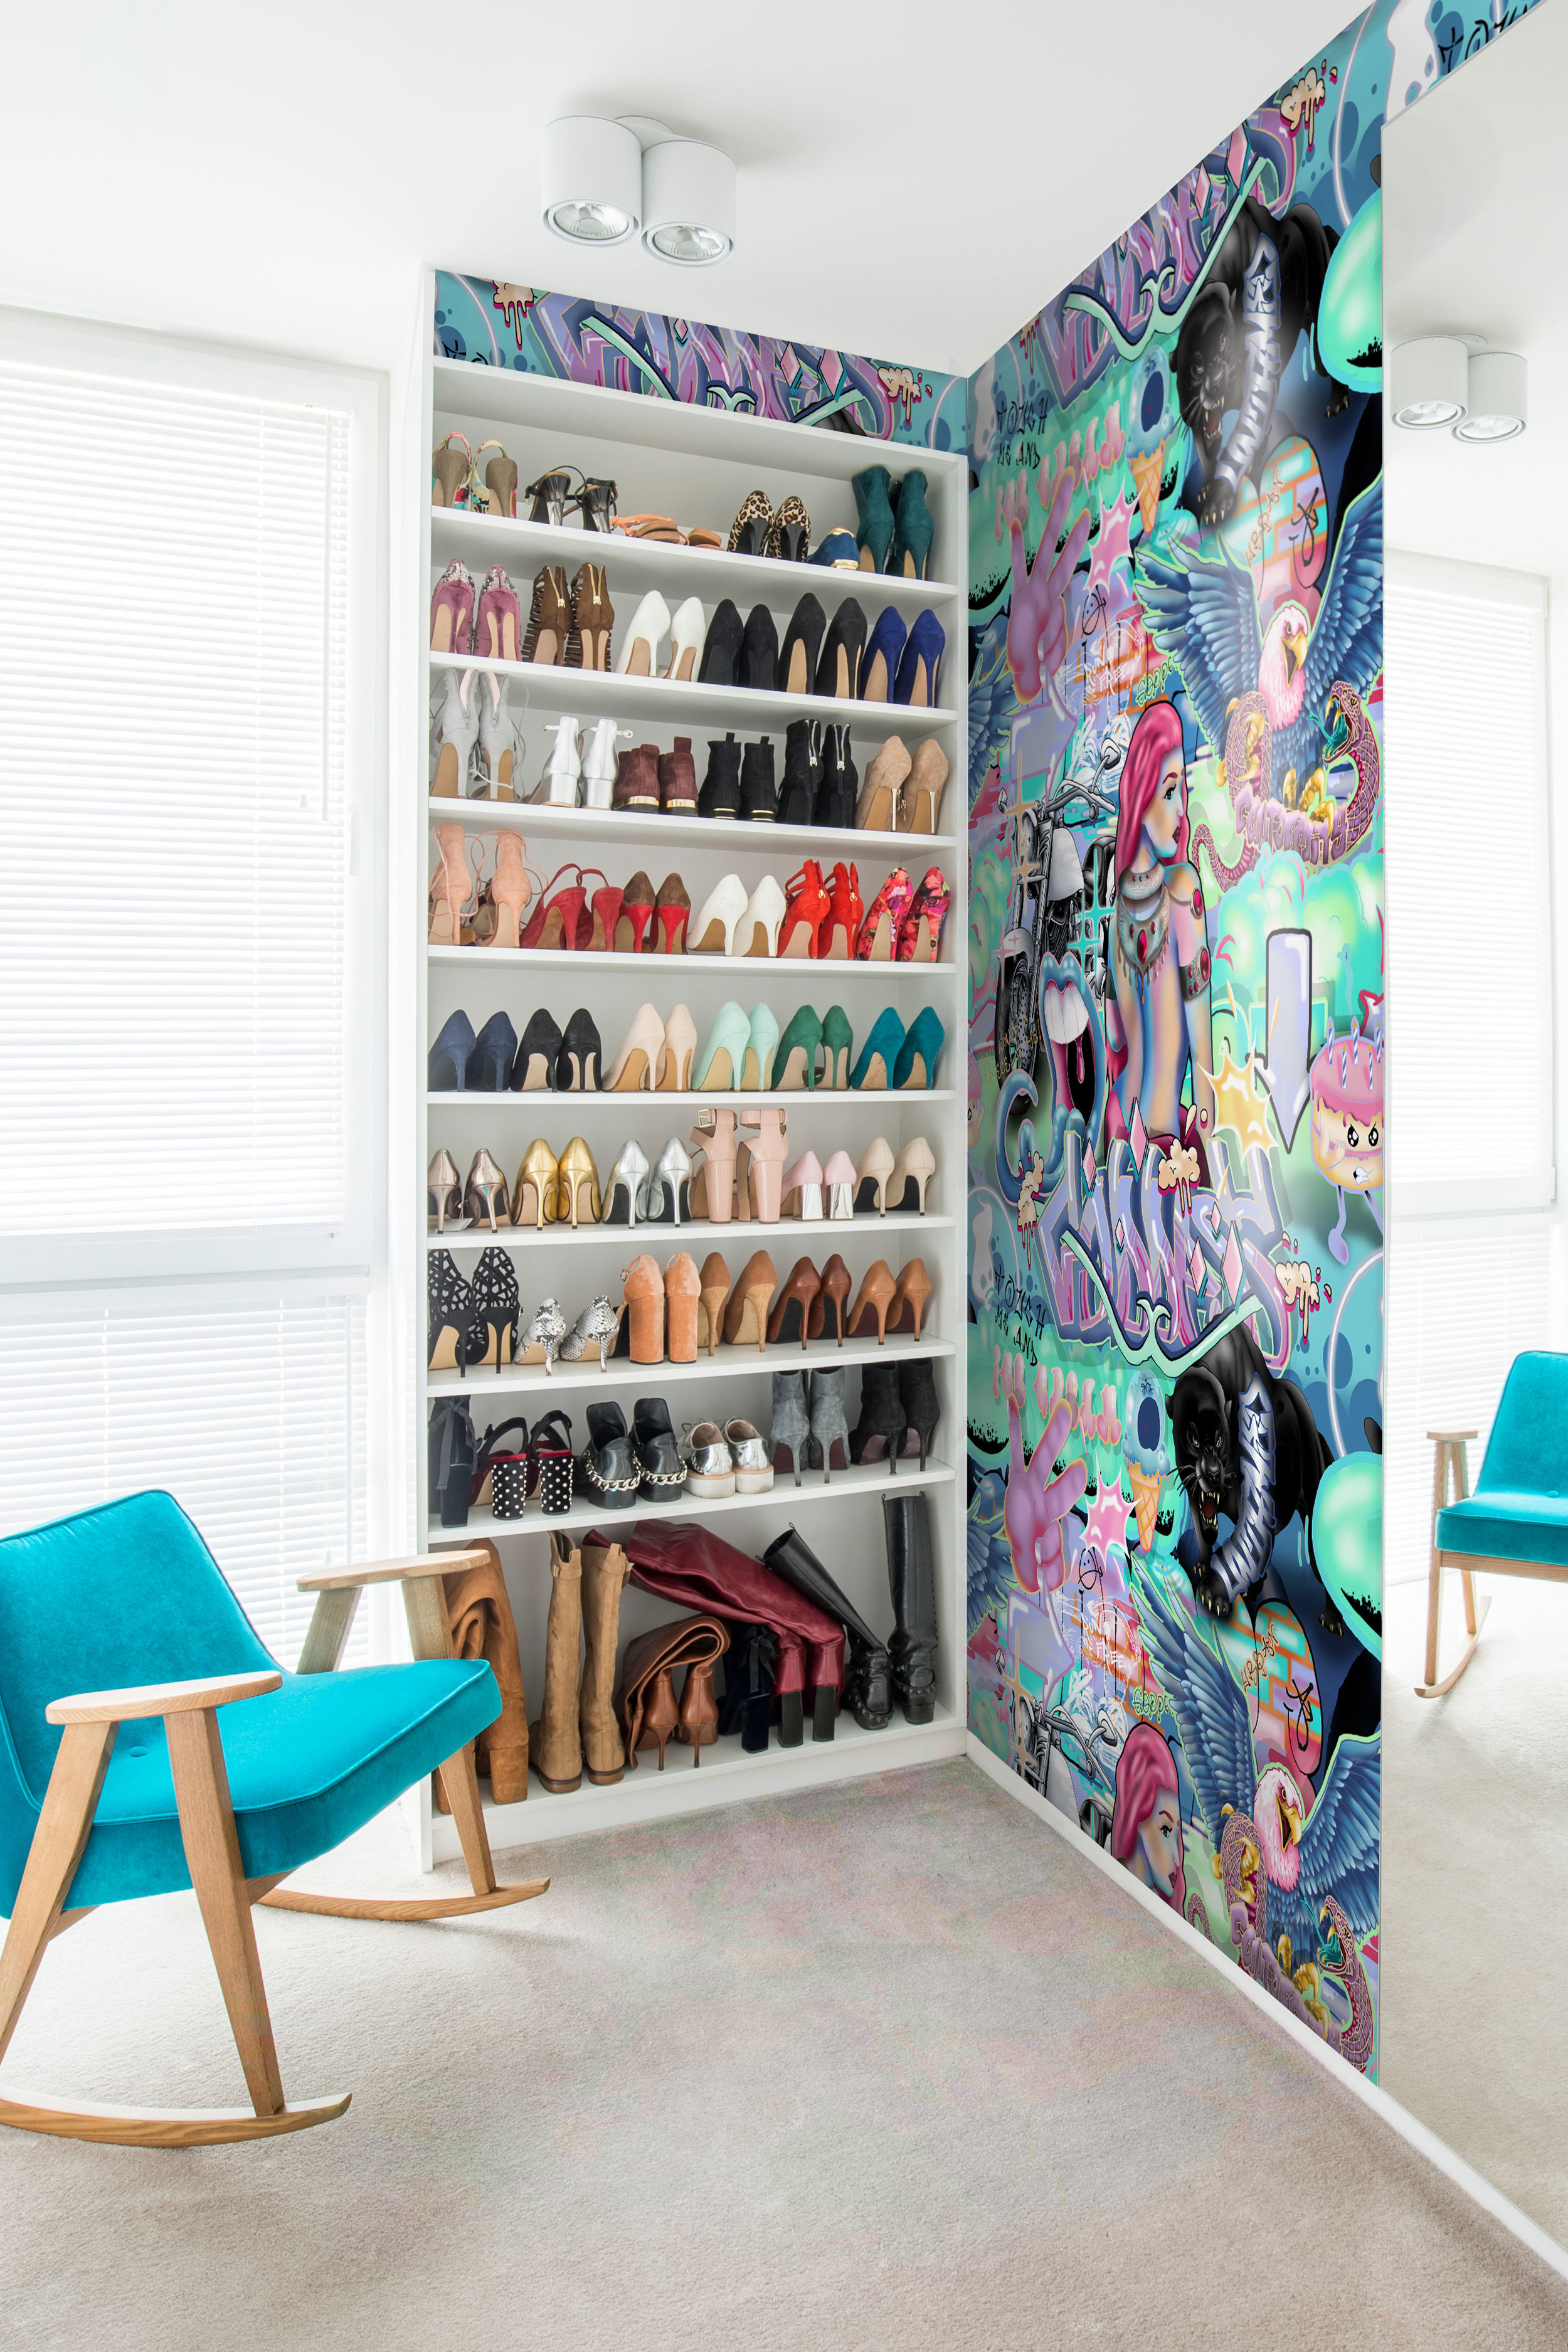 Wallpaper for walk in wardrobe, funky graffiti style. Vinyl luxury wallcovering from Sydney Australia. Colours of pop neon bright and colourful. Graffiti / teenage style with motorbike, rock n roll and funny slogans.